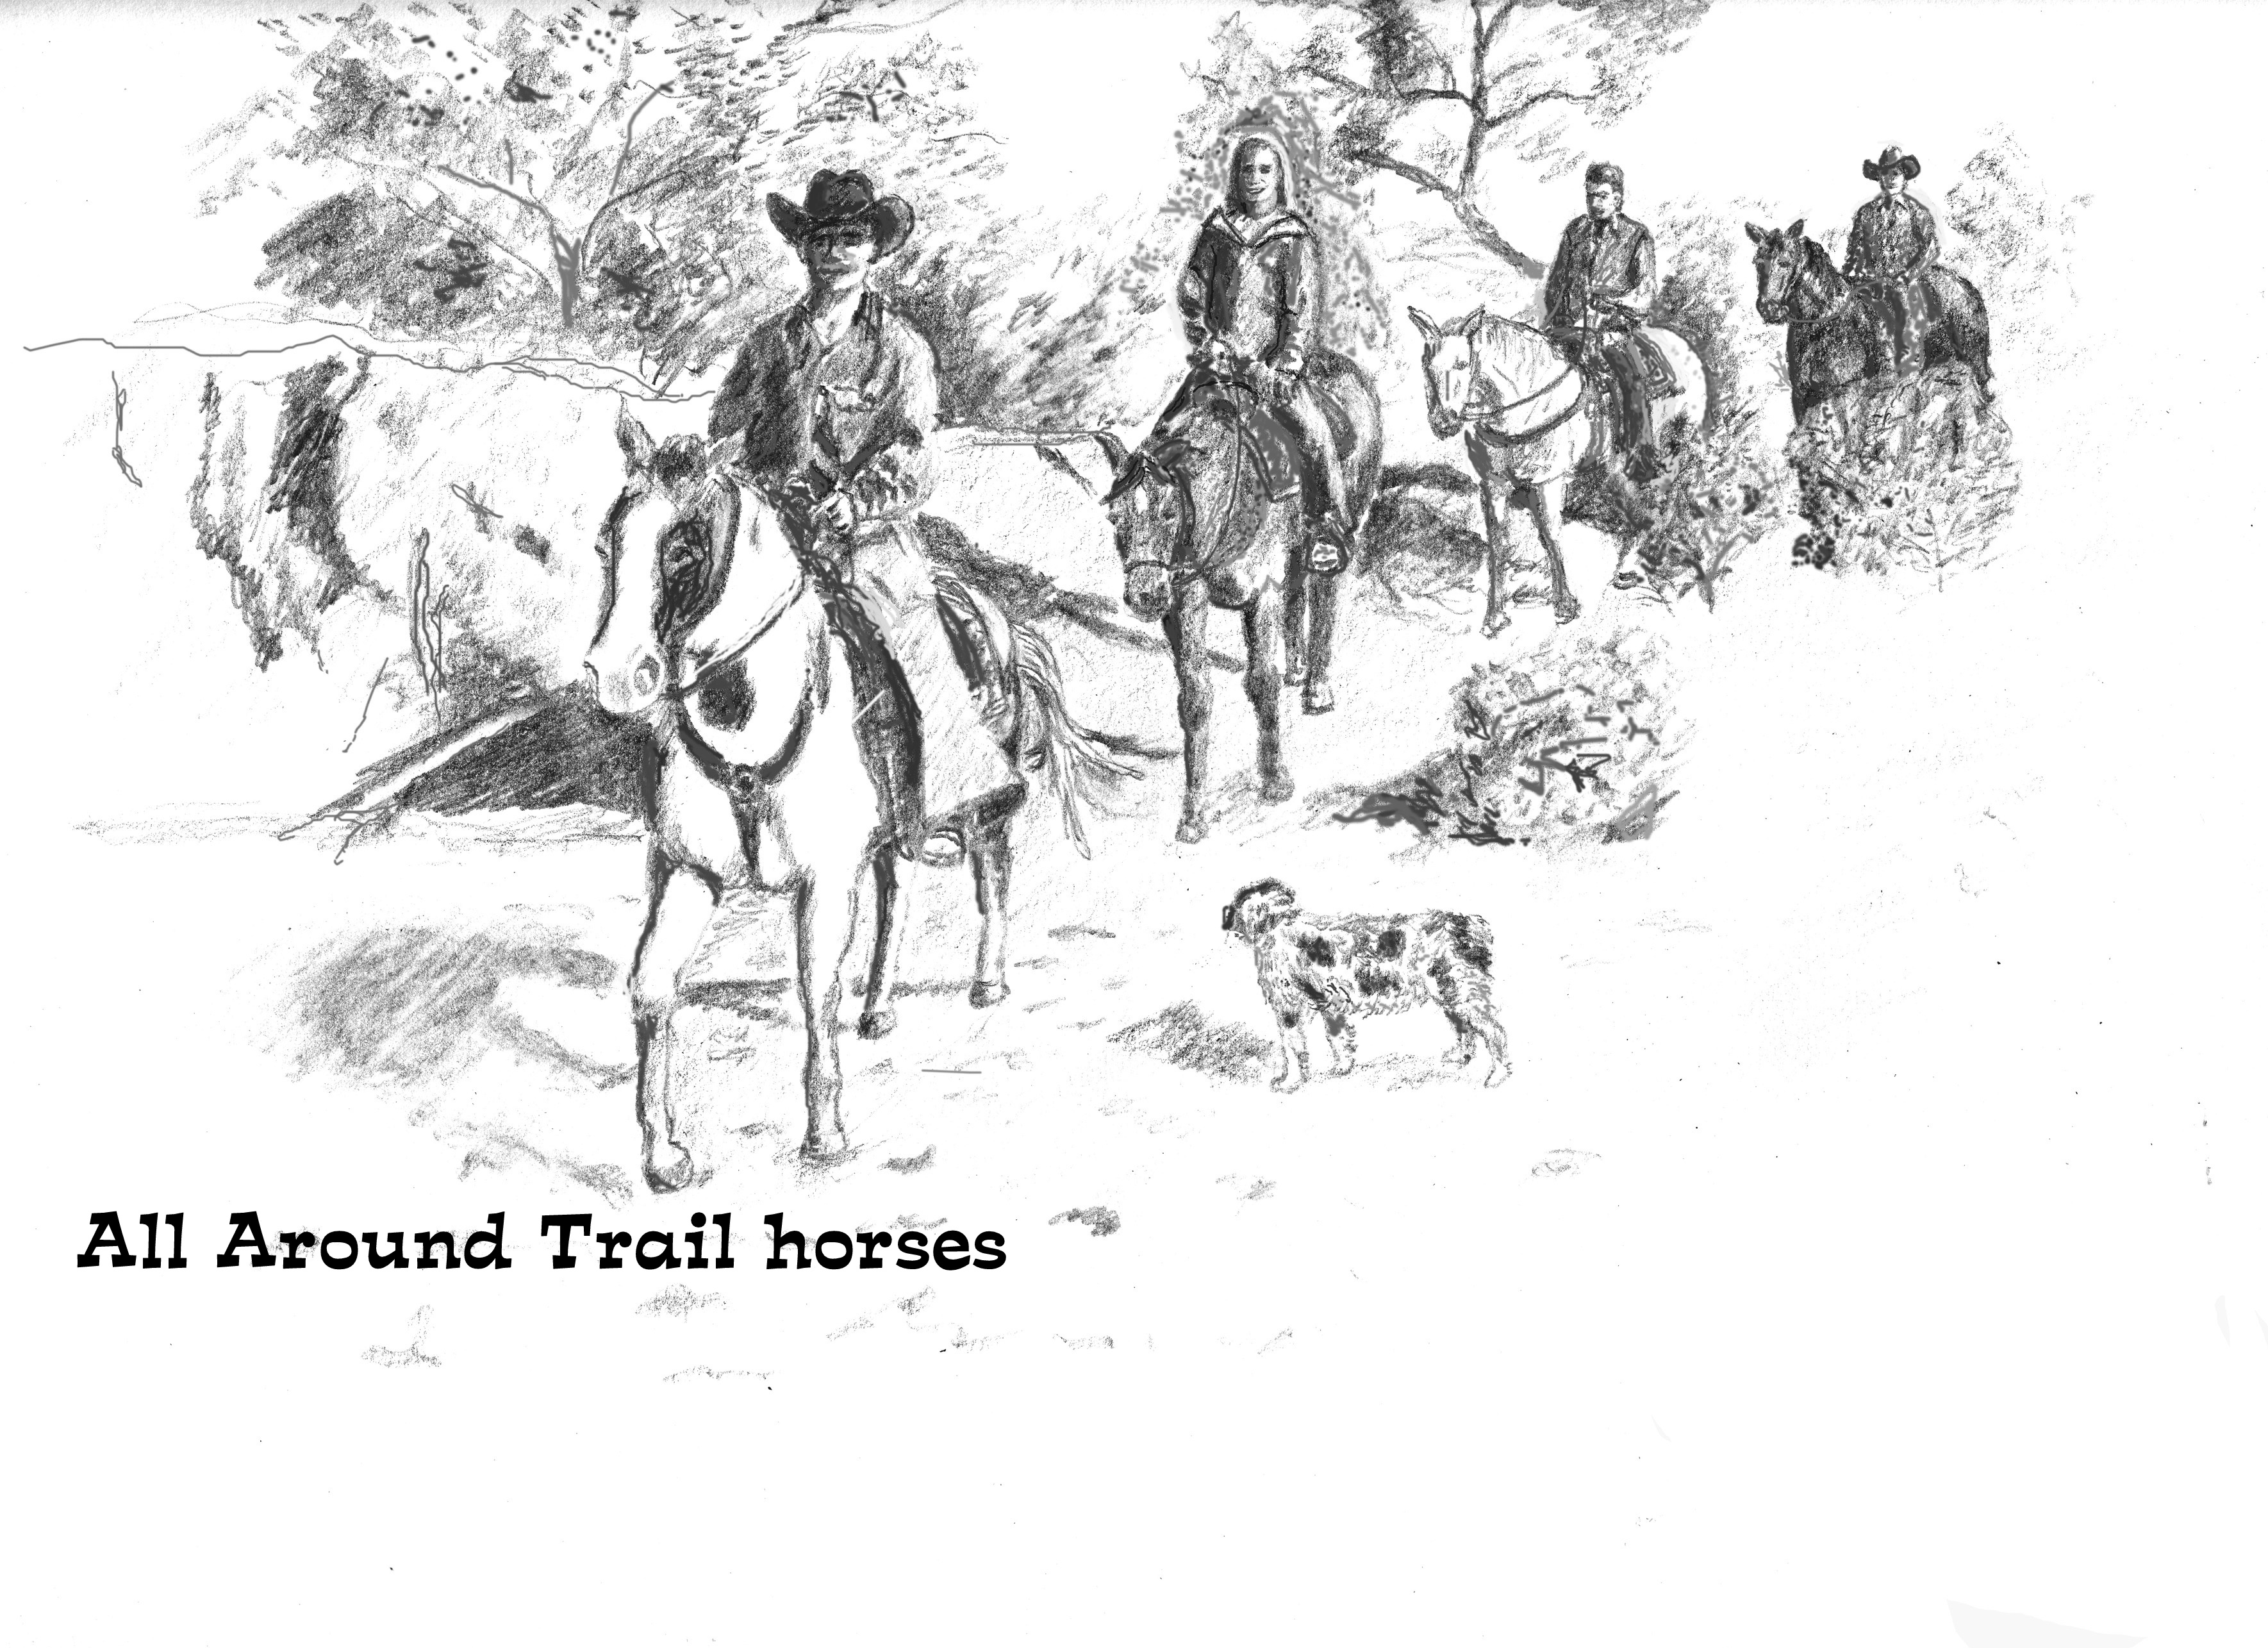 All Around Trail Horses, LLC